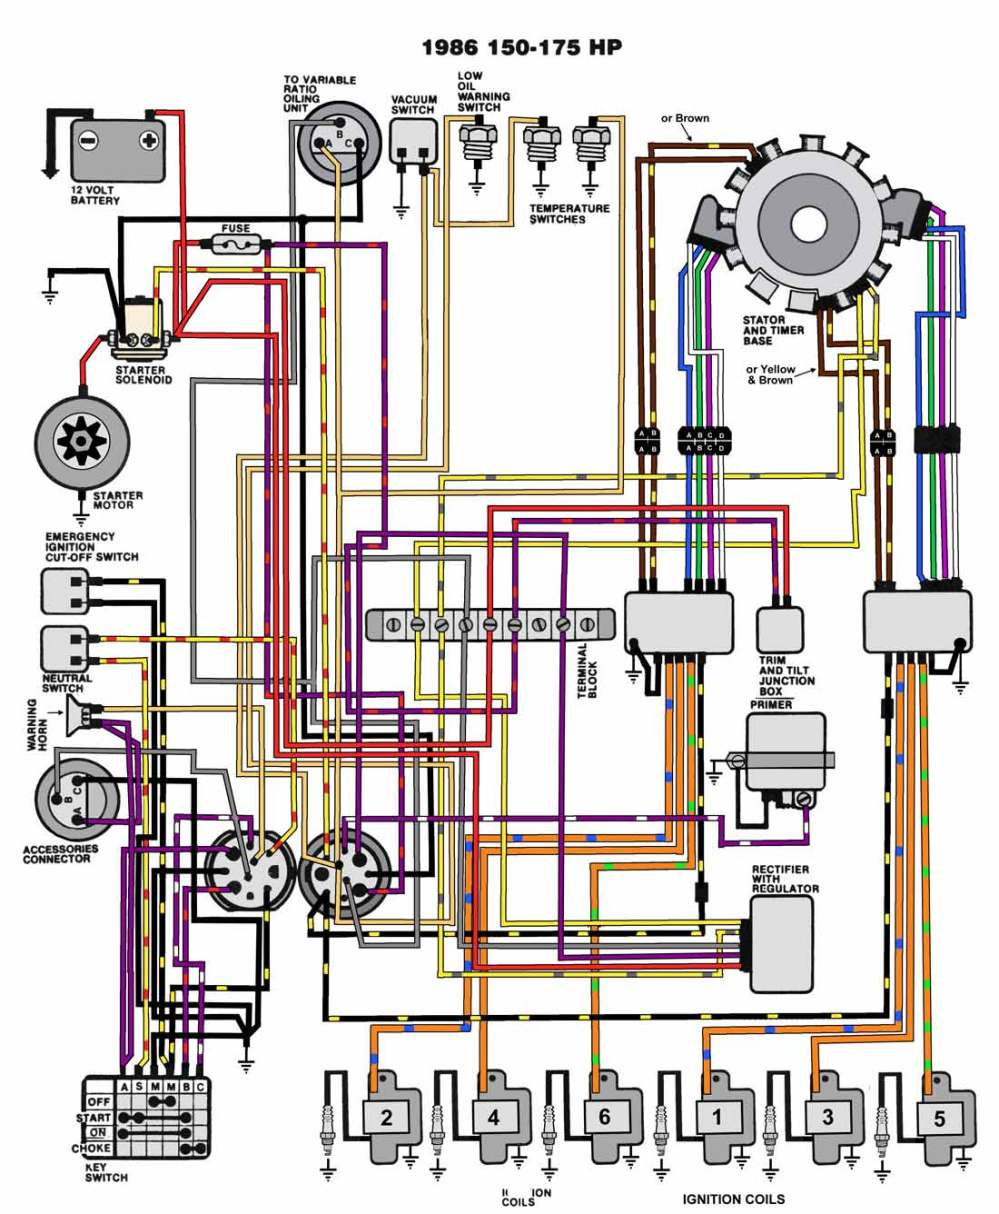 medium resolution of omc schematic diagrams wiring diagram blog omc outdrive diagram omc schematic diagrams